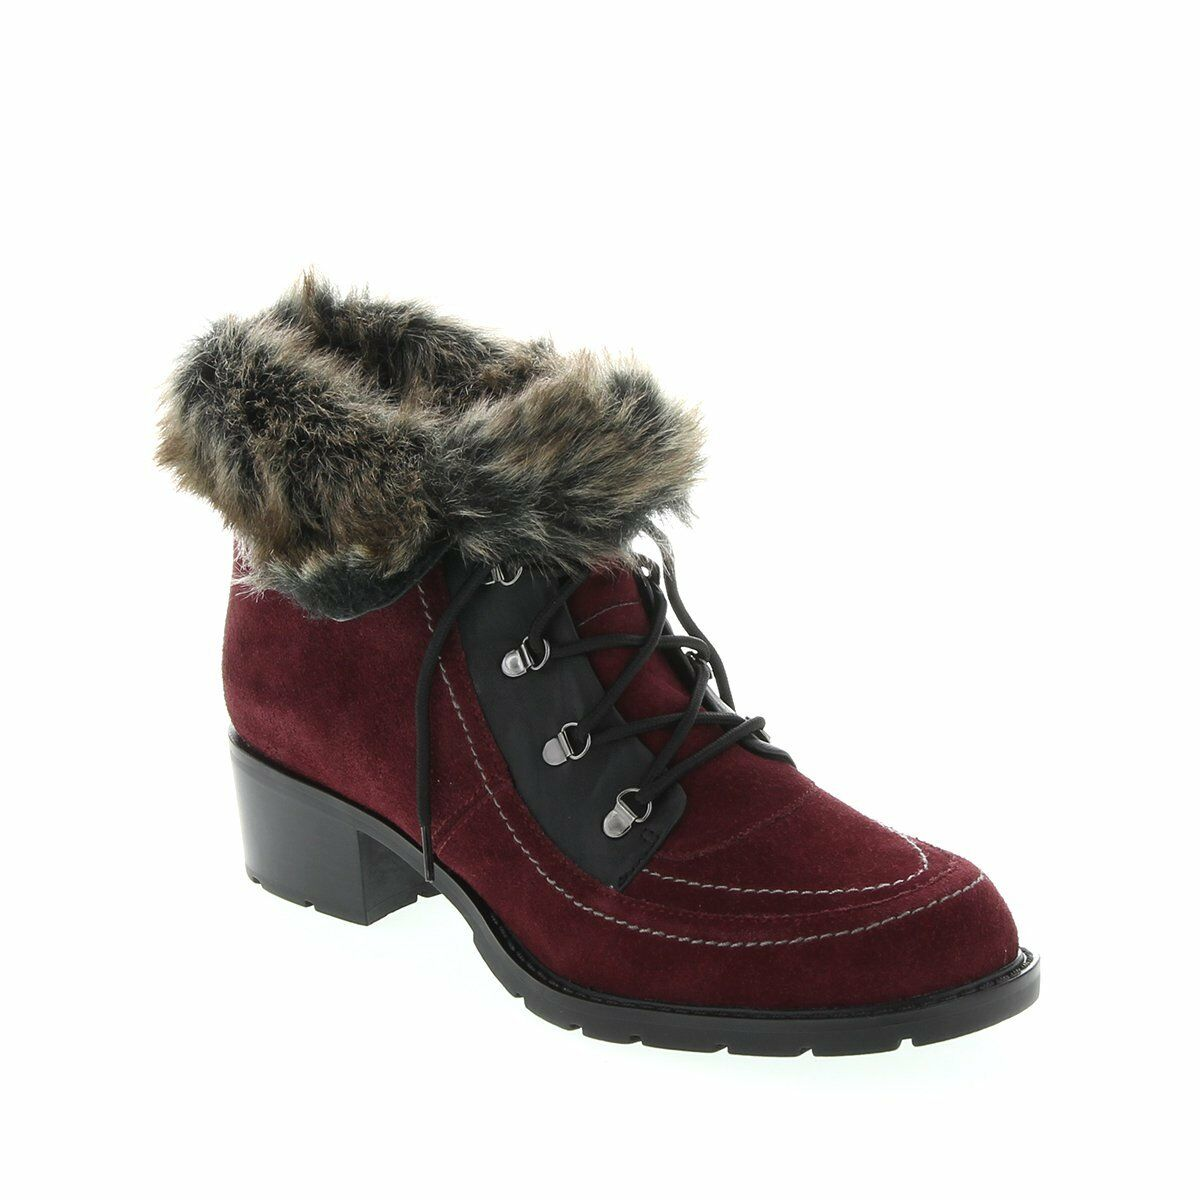 89.90 Sporto® Water-Resistant Genuine Suede Boot 366164 50% OFF NOW  44.95